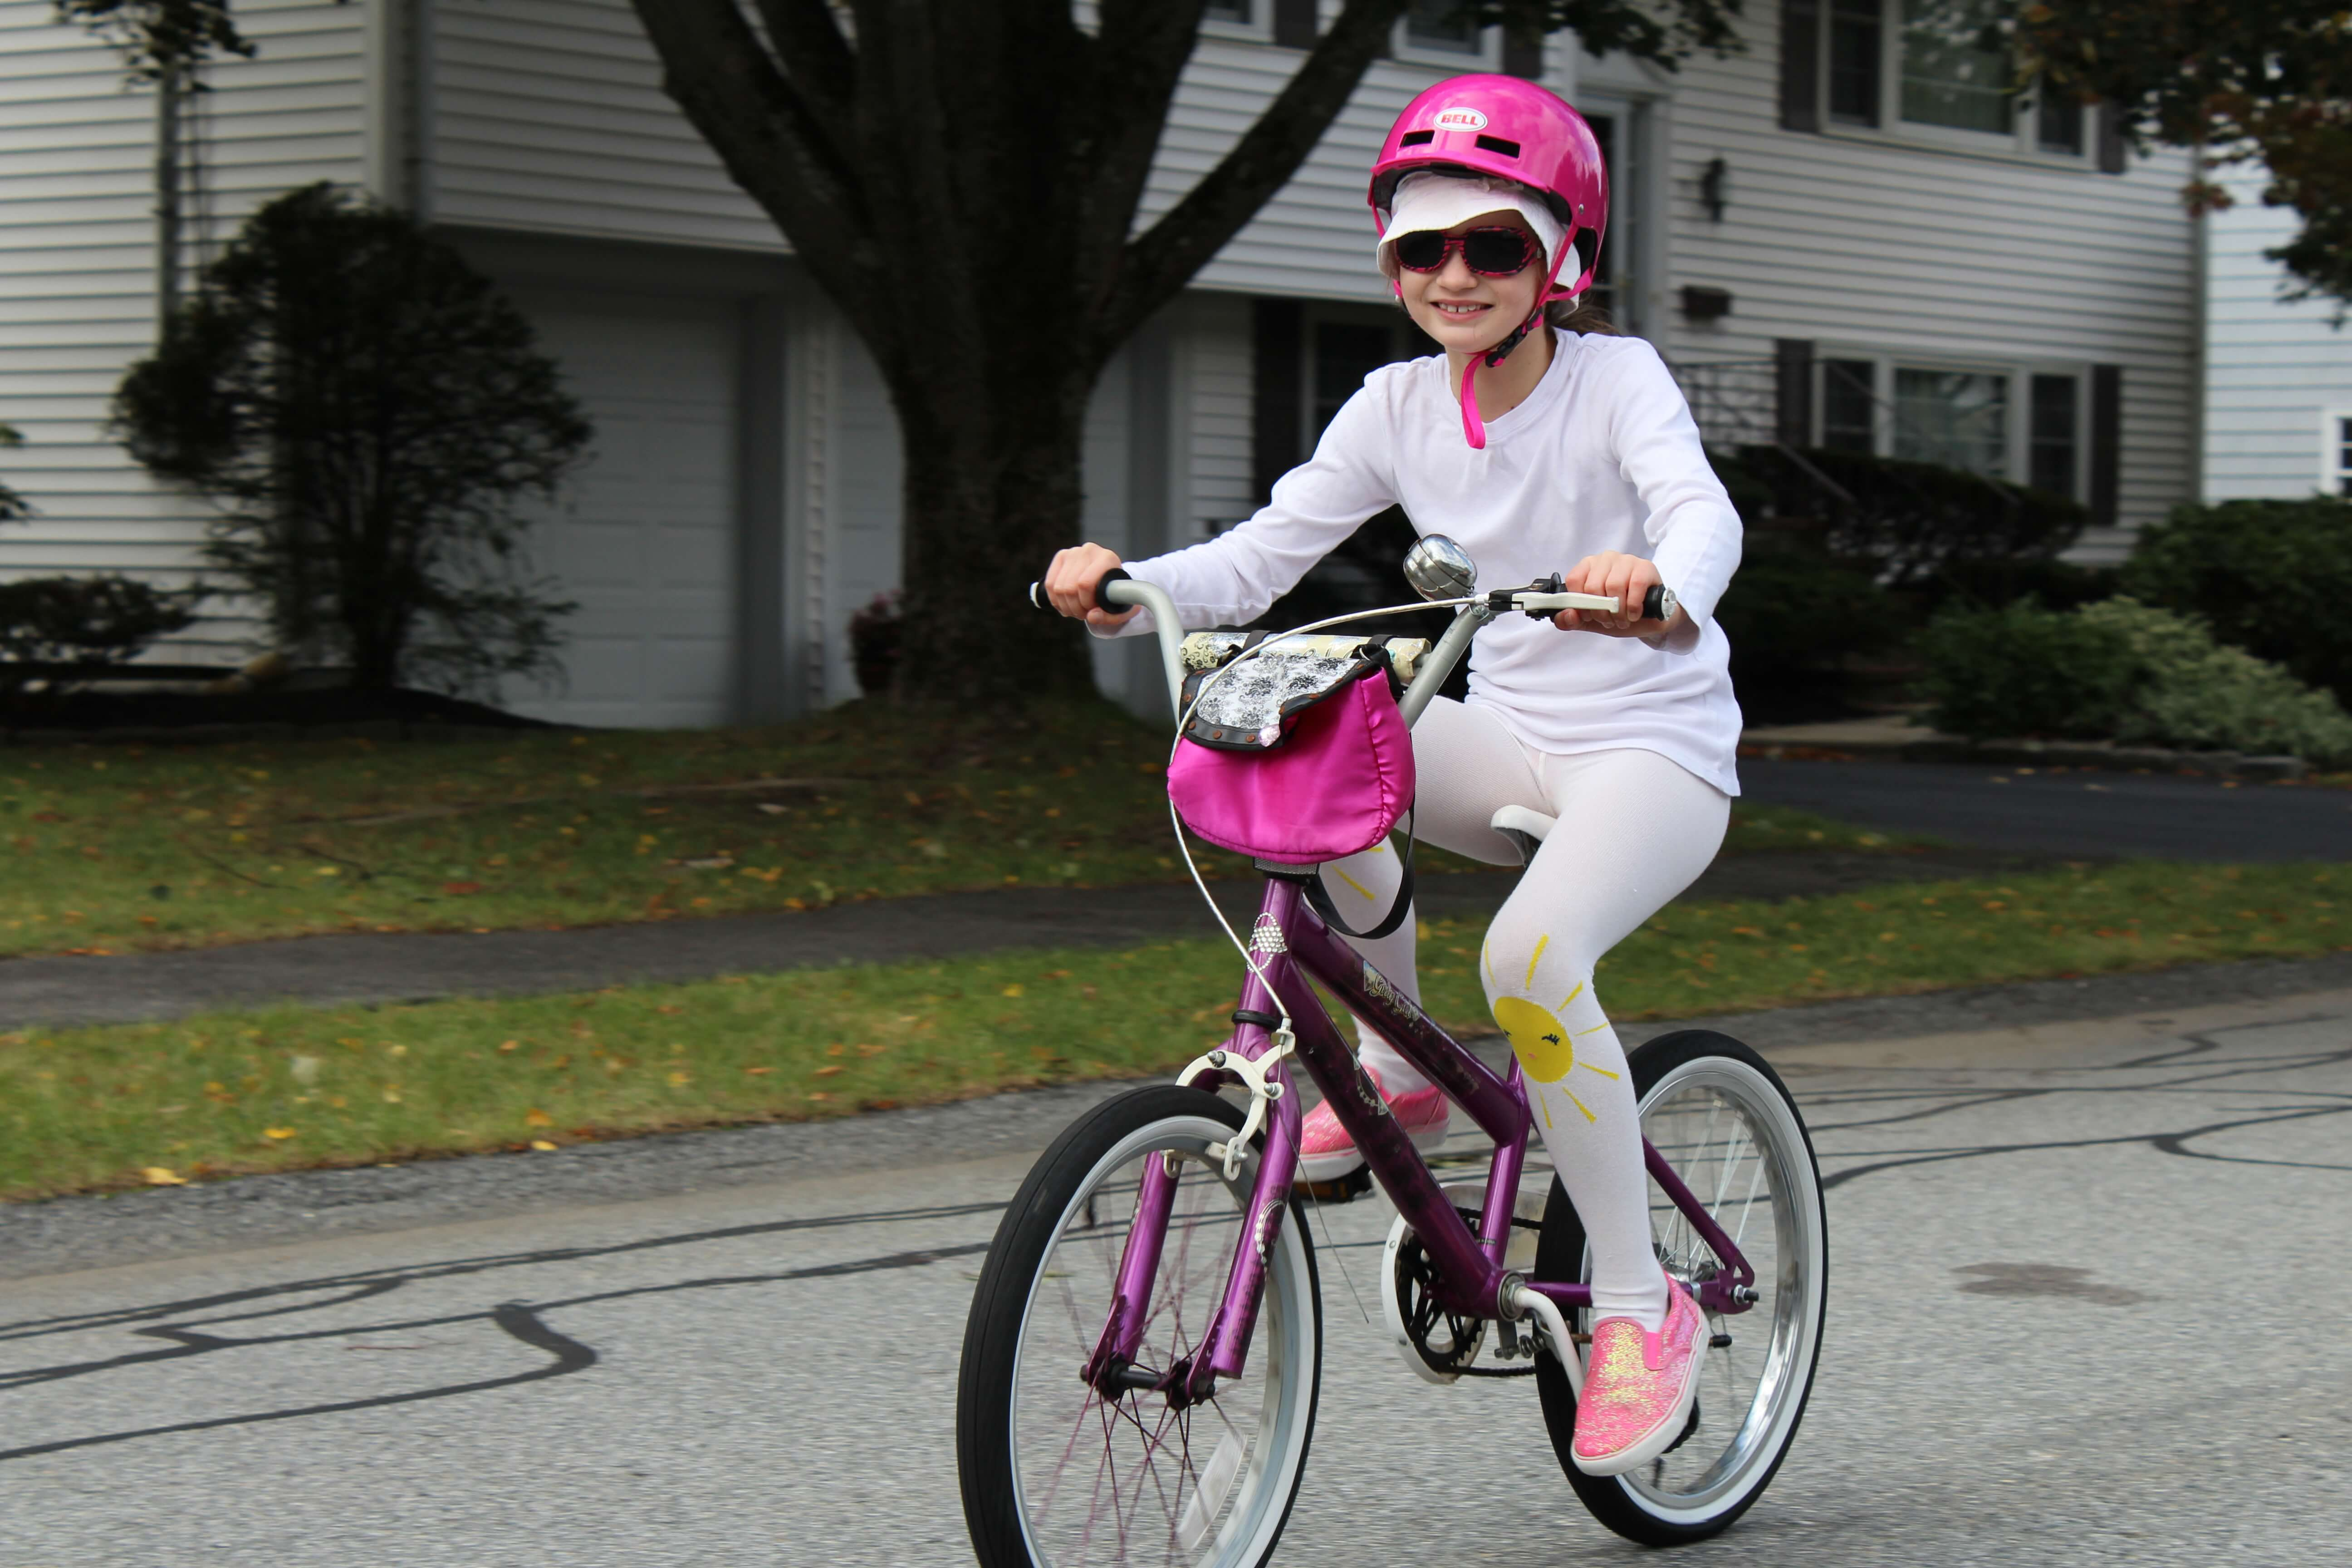 Every special needs kids biggest milestone is accomplishing what their doctor said they would never do. For my daughter, it was bike riding. www.coffeeandcarpool.com